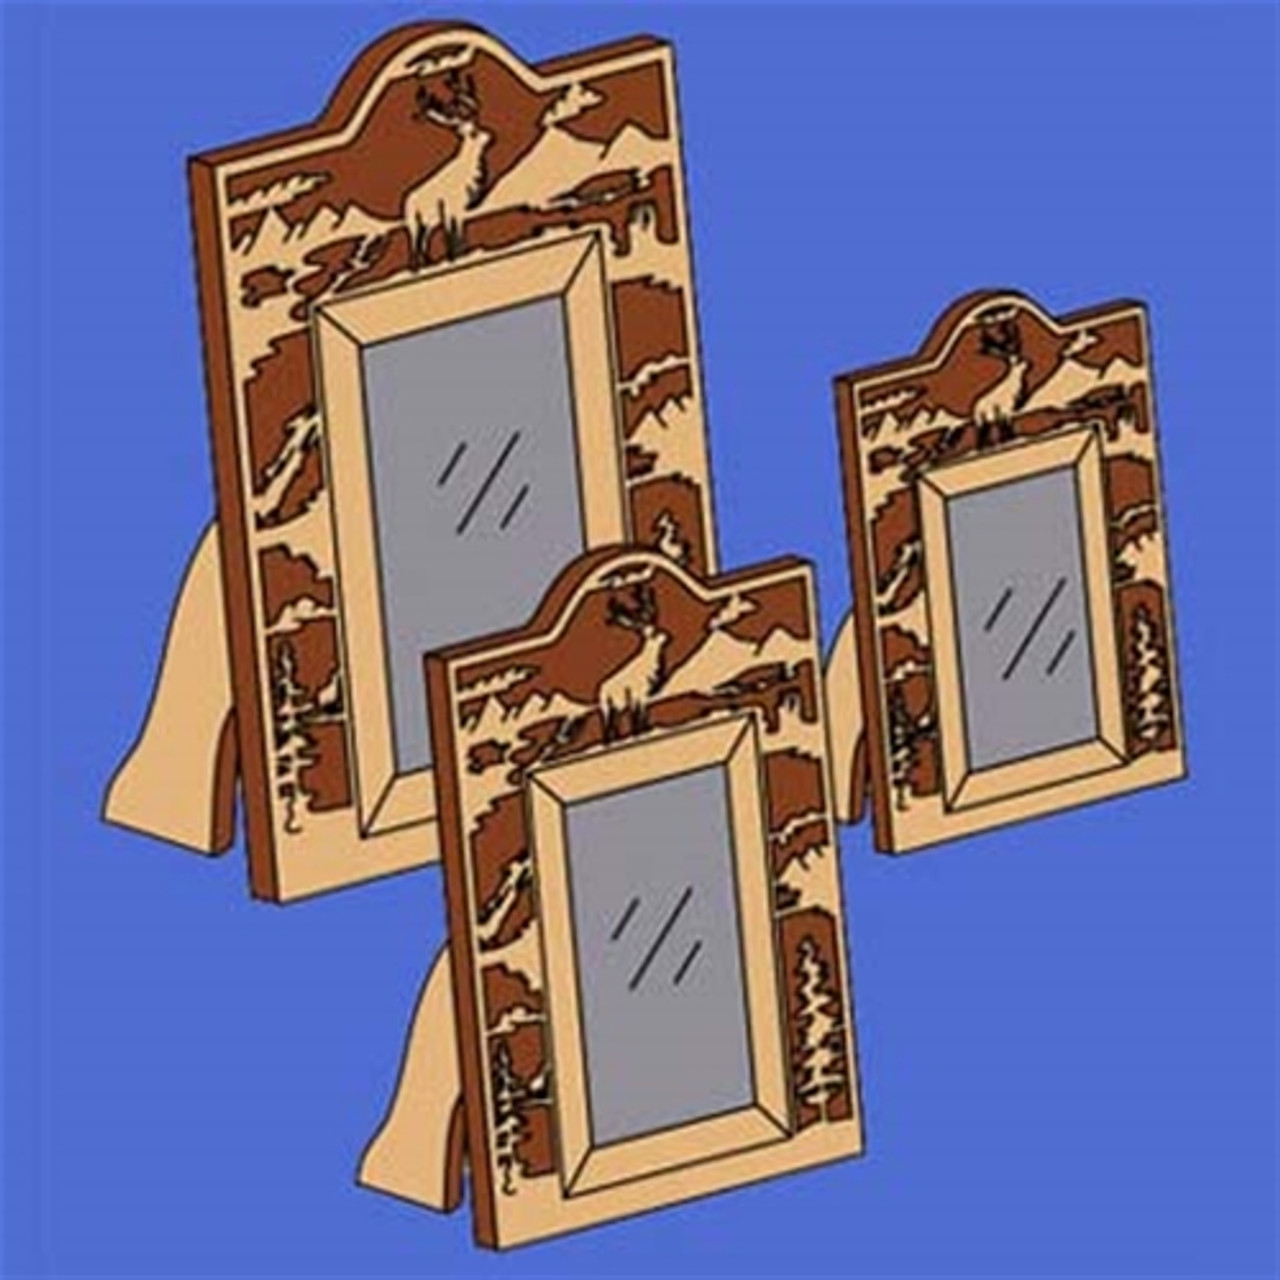 The Elk Scroll Saw Picture Frame Set Woodworking Plan will be a perfect way to display your pictures of your family.